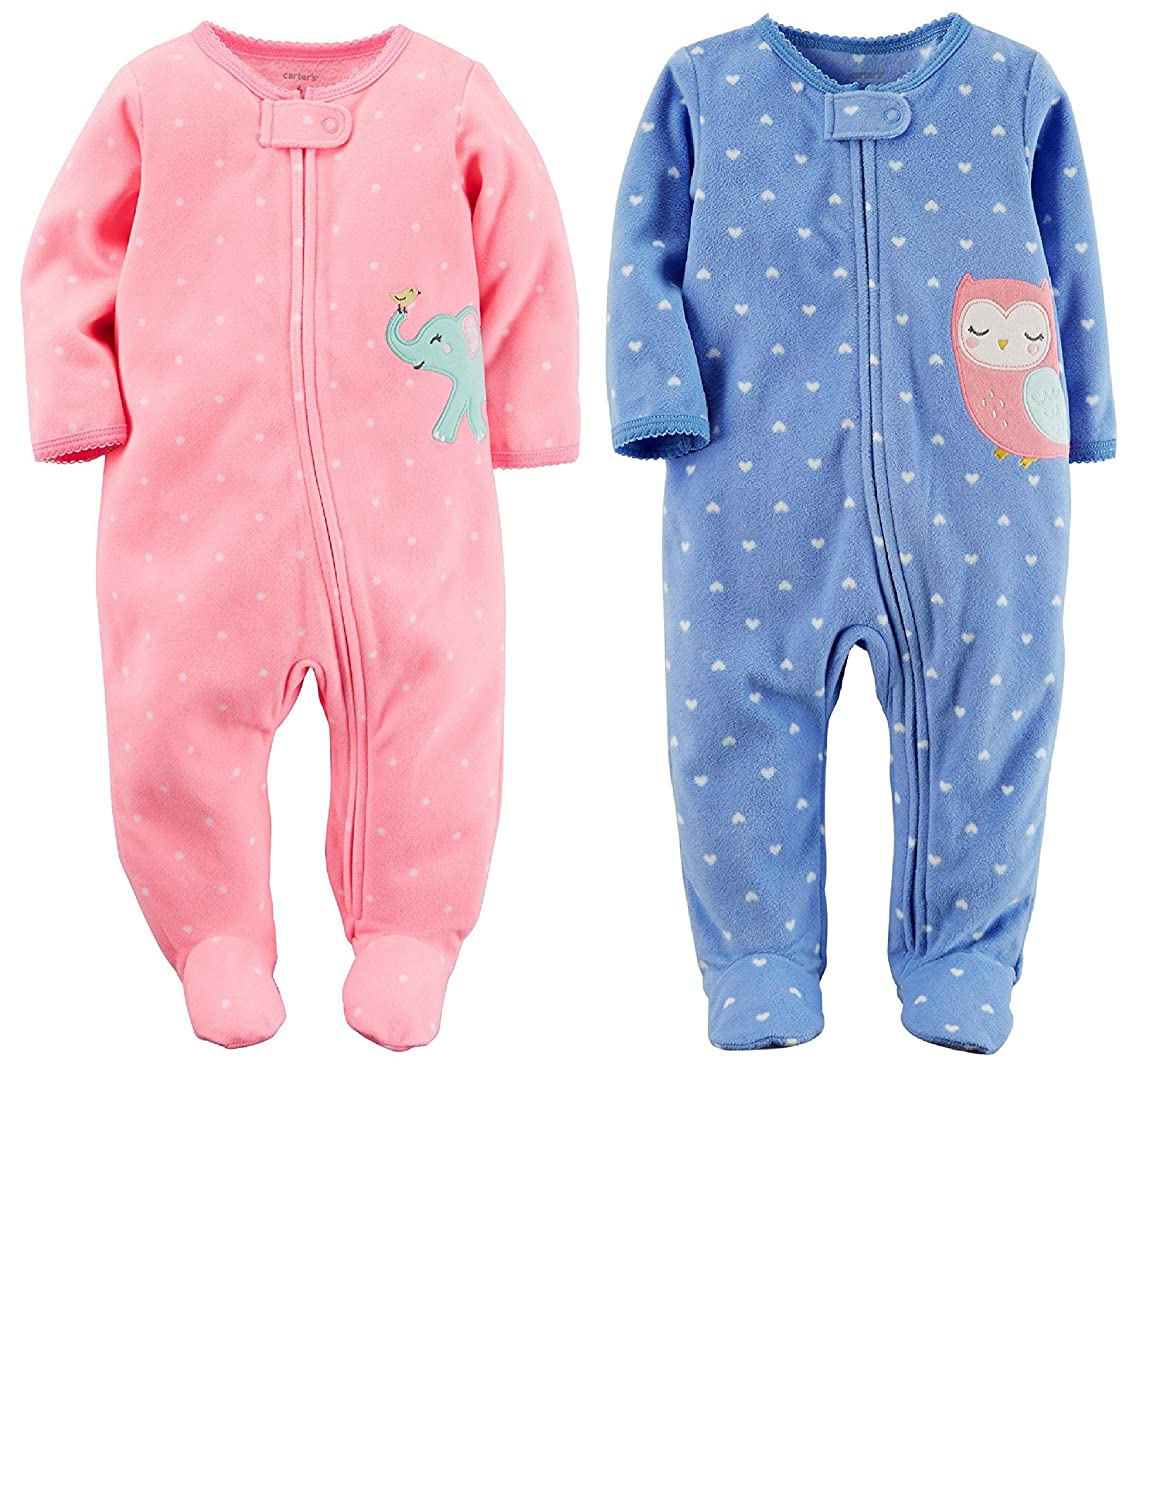 【日本未発売】 Carter Girl 's Baby Girl 's 3 Piece B017LG224C Adorable Love 3 3 Pieceパンツセット 9 Months B017LG224C, 牛乳ヨーグルトの伊都物語:40bccaf8 --- turtleskin-eu.access.secure-ssl-servers.info